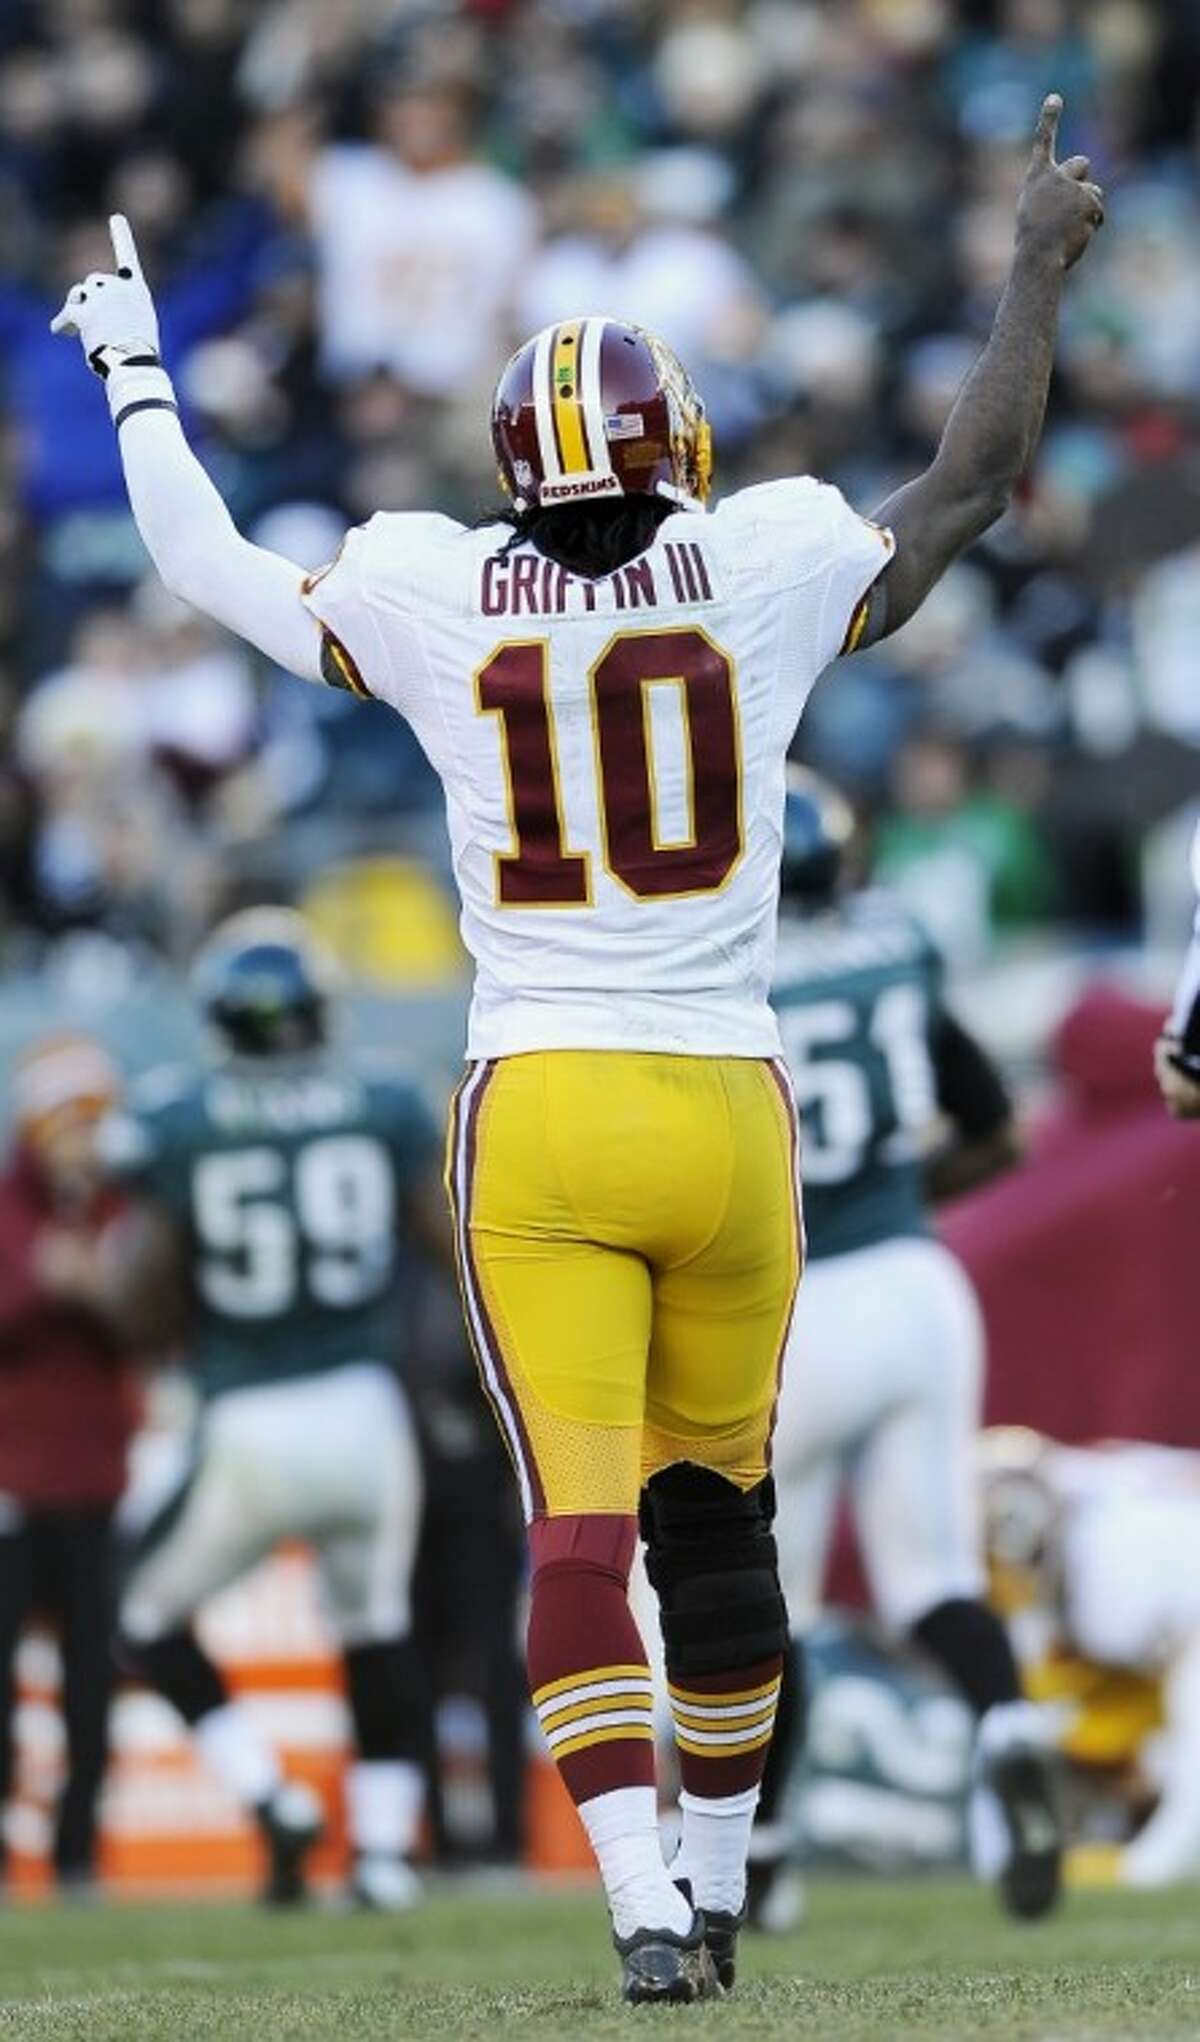 Robert Griffin III, a graduate of Copperas Cove High School and Baylor University, has guided the Washington Redskins to six straight victories.